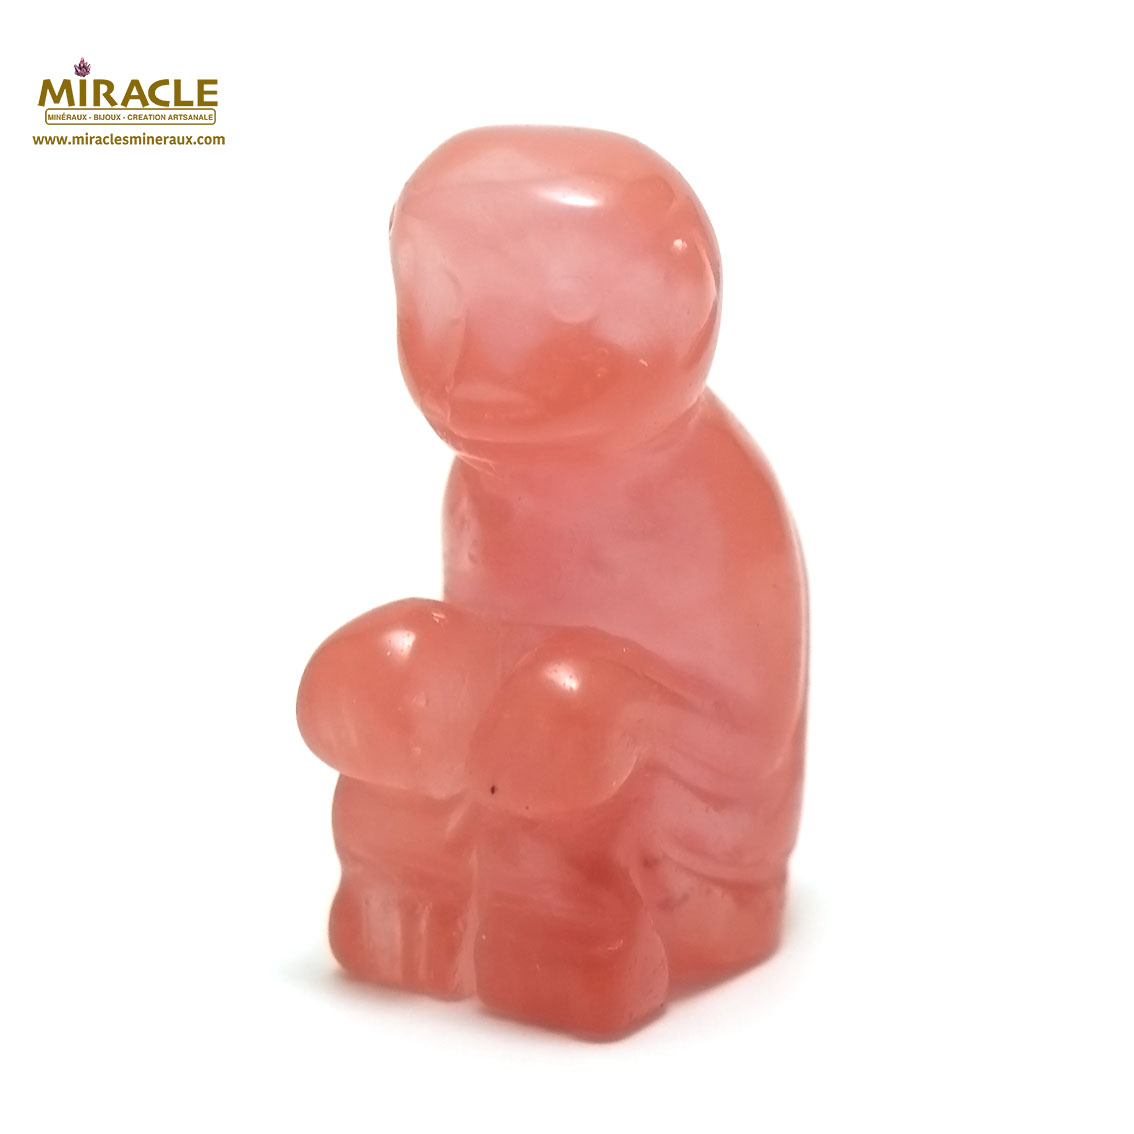 statuette minéraux singeen pierre naturelle de quartz strawberry